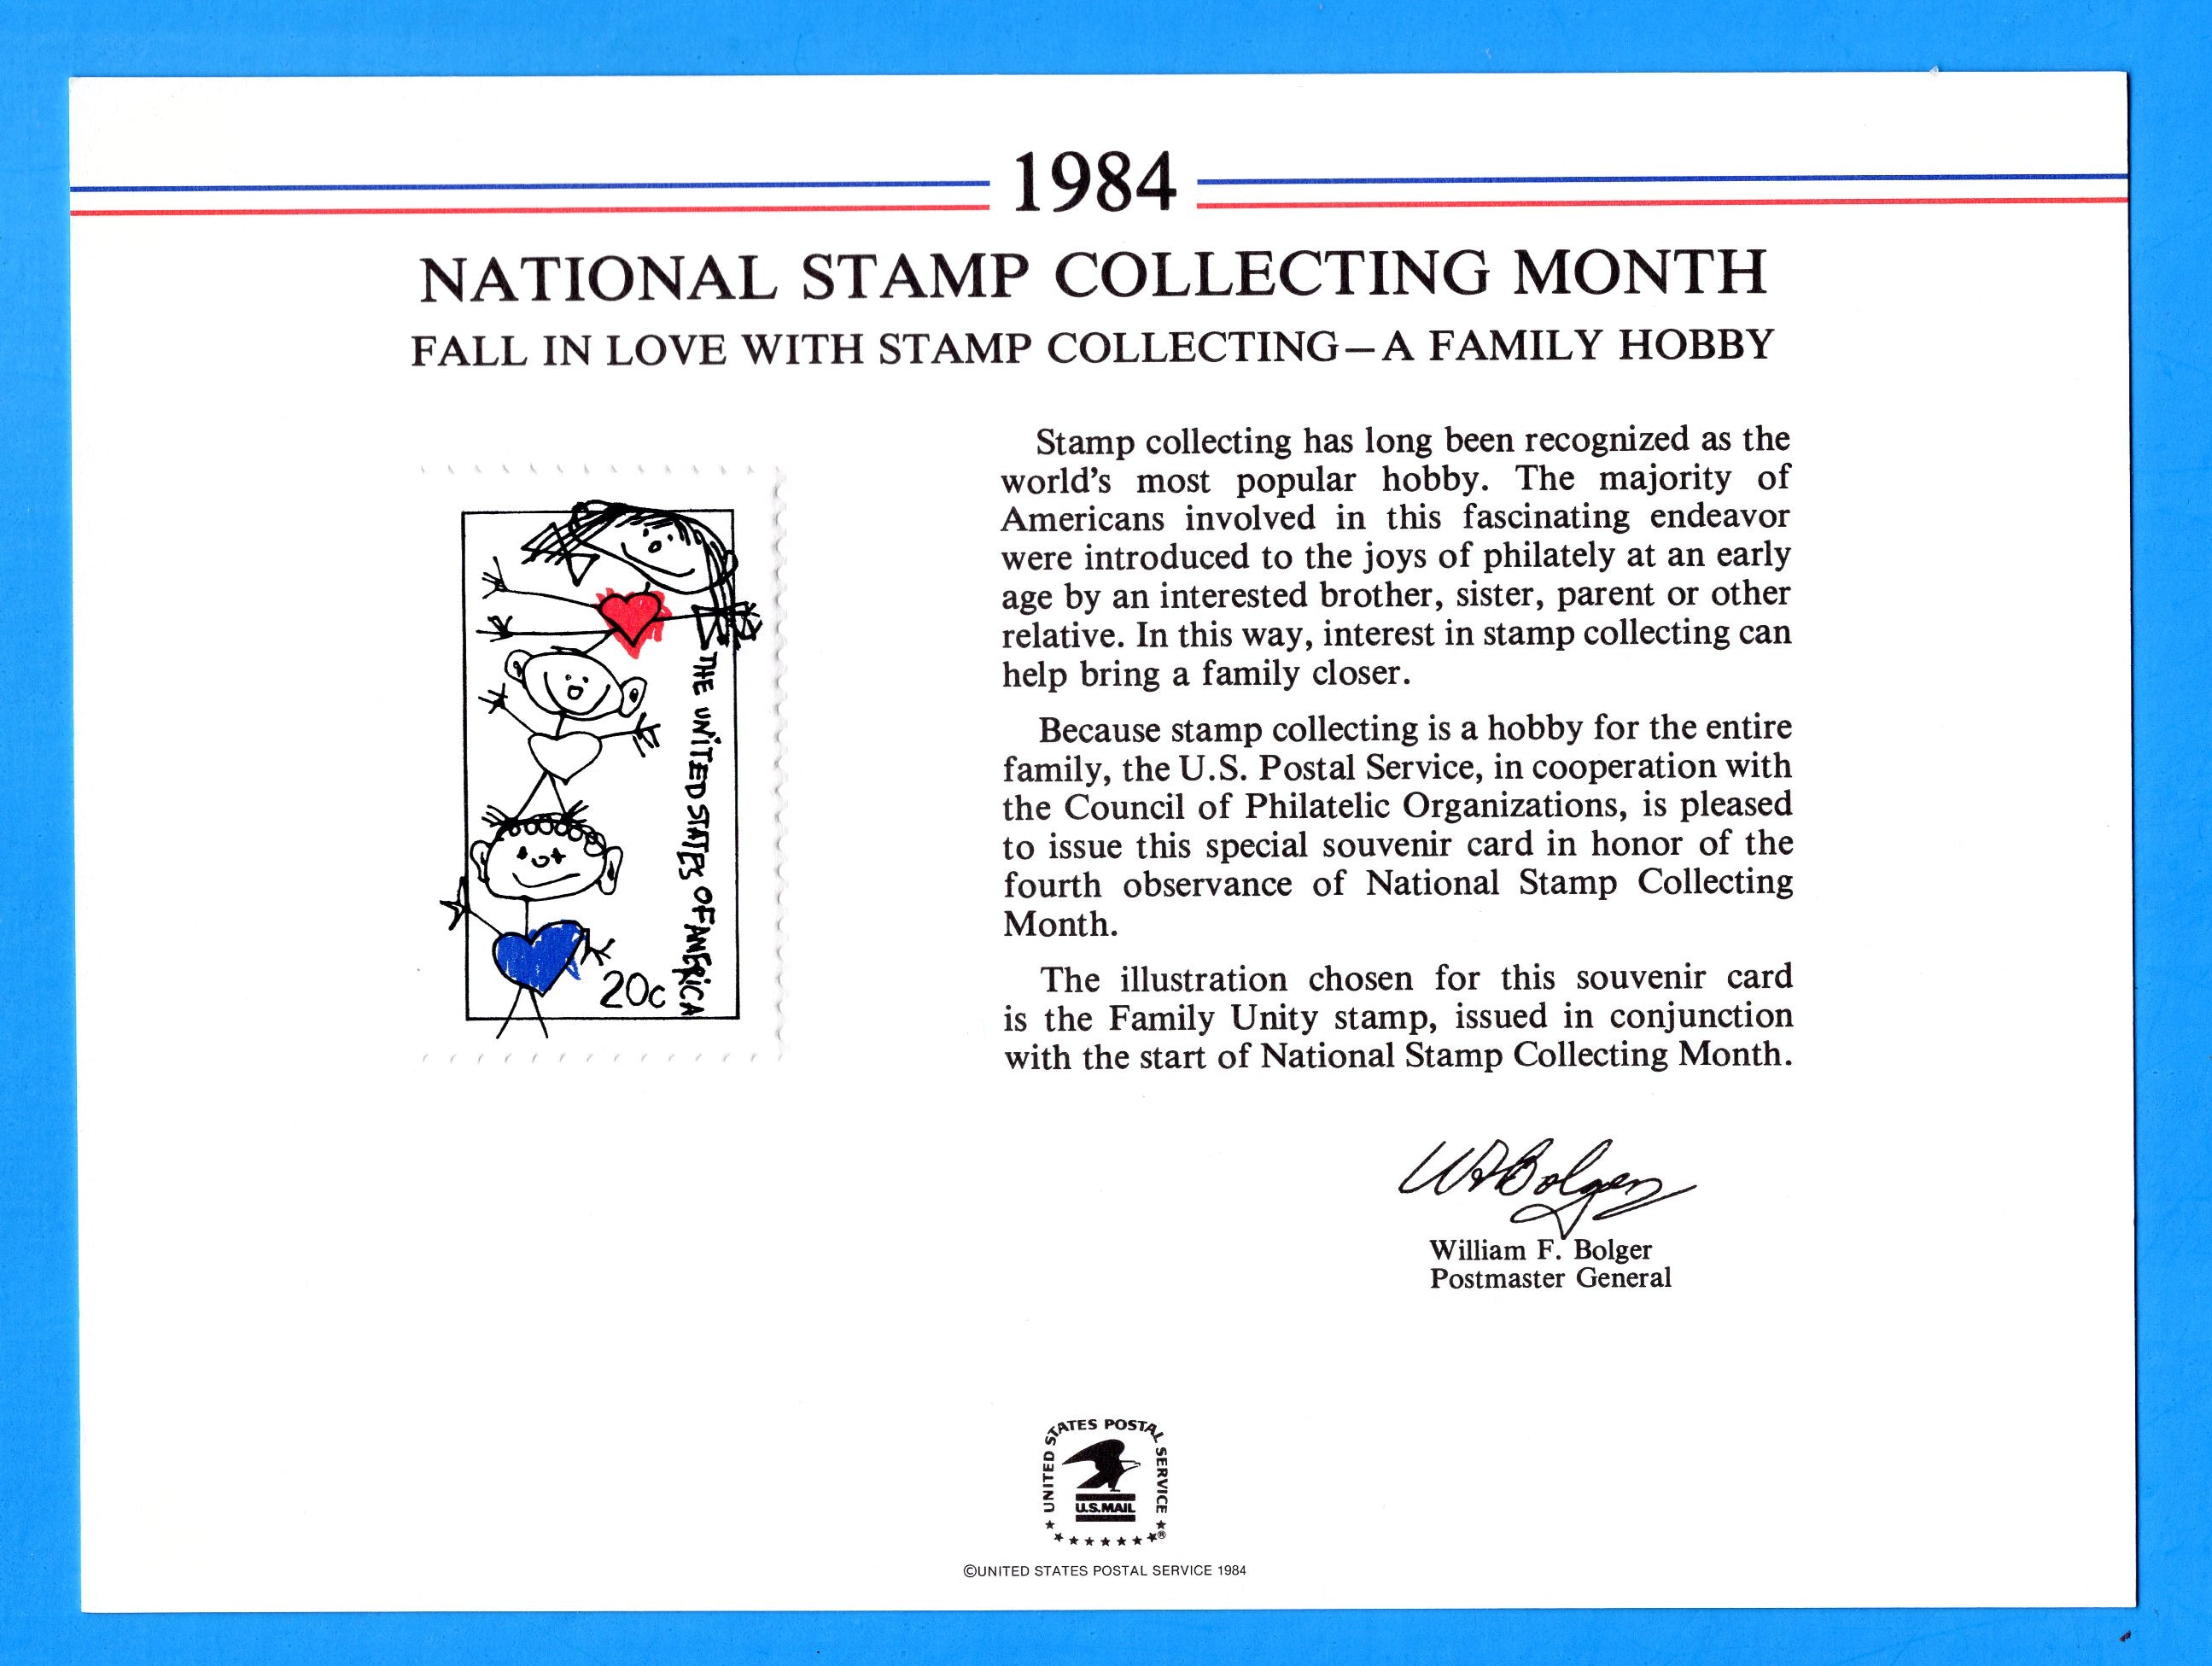 National Stamp Collecting Month, A Family Hobby, 1984 Souvenir Card